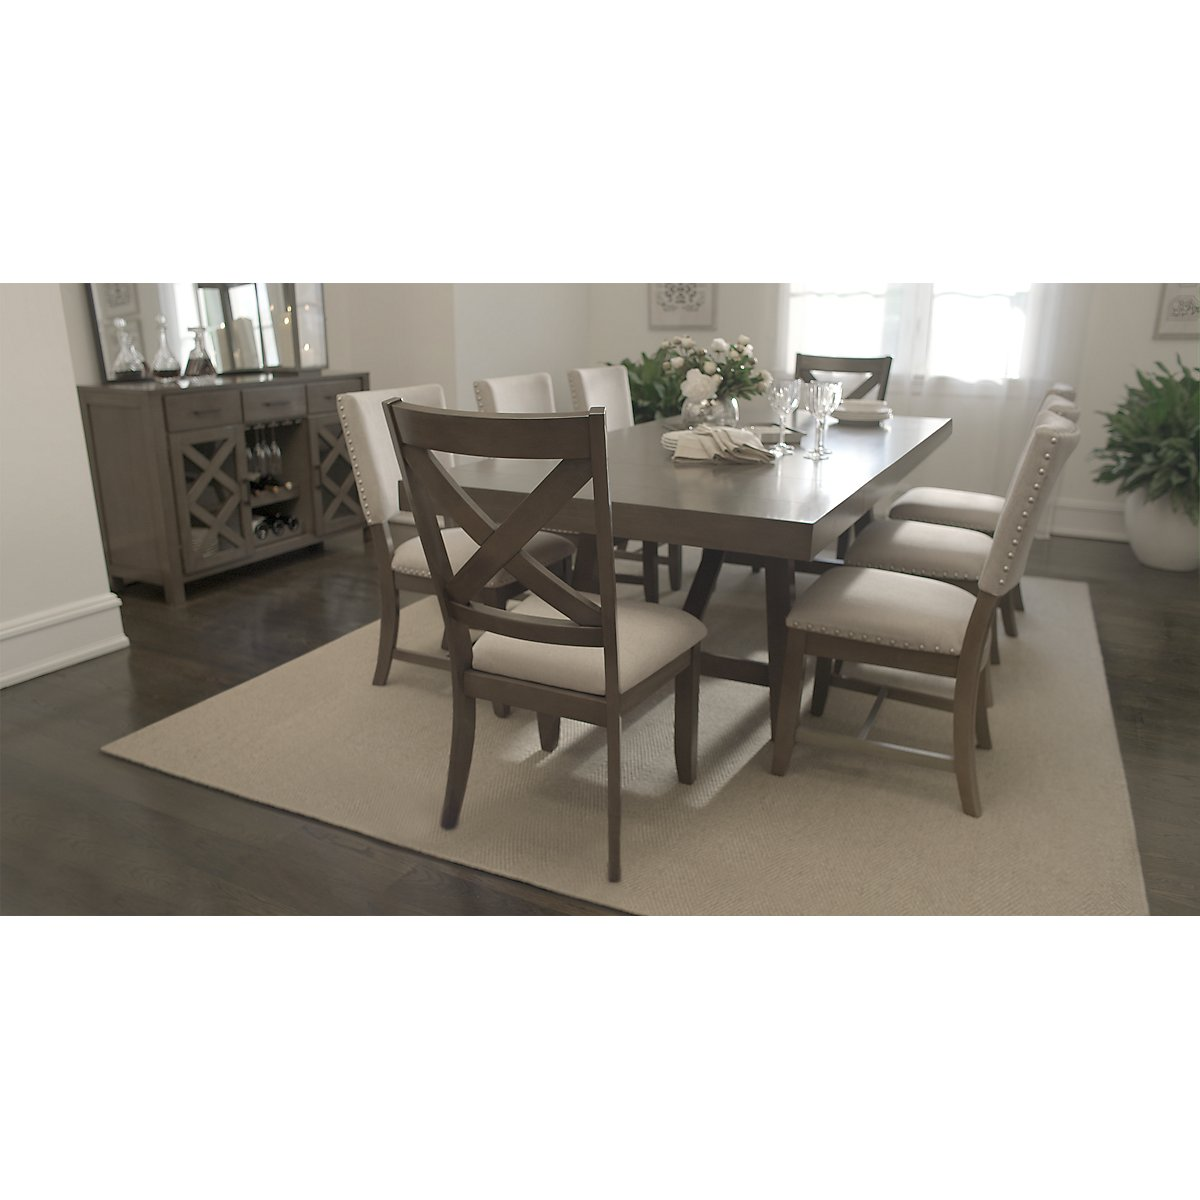 City Furniture Omaha Gray Rectangular Table